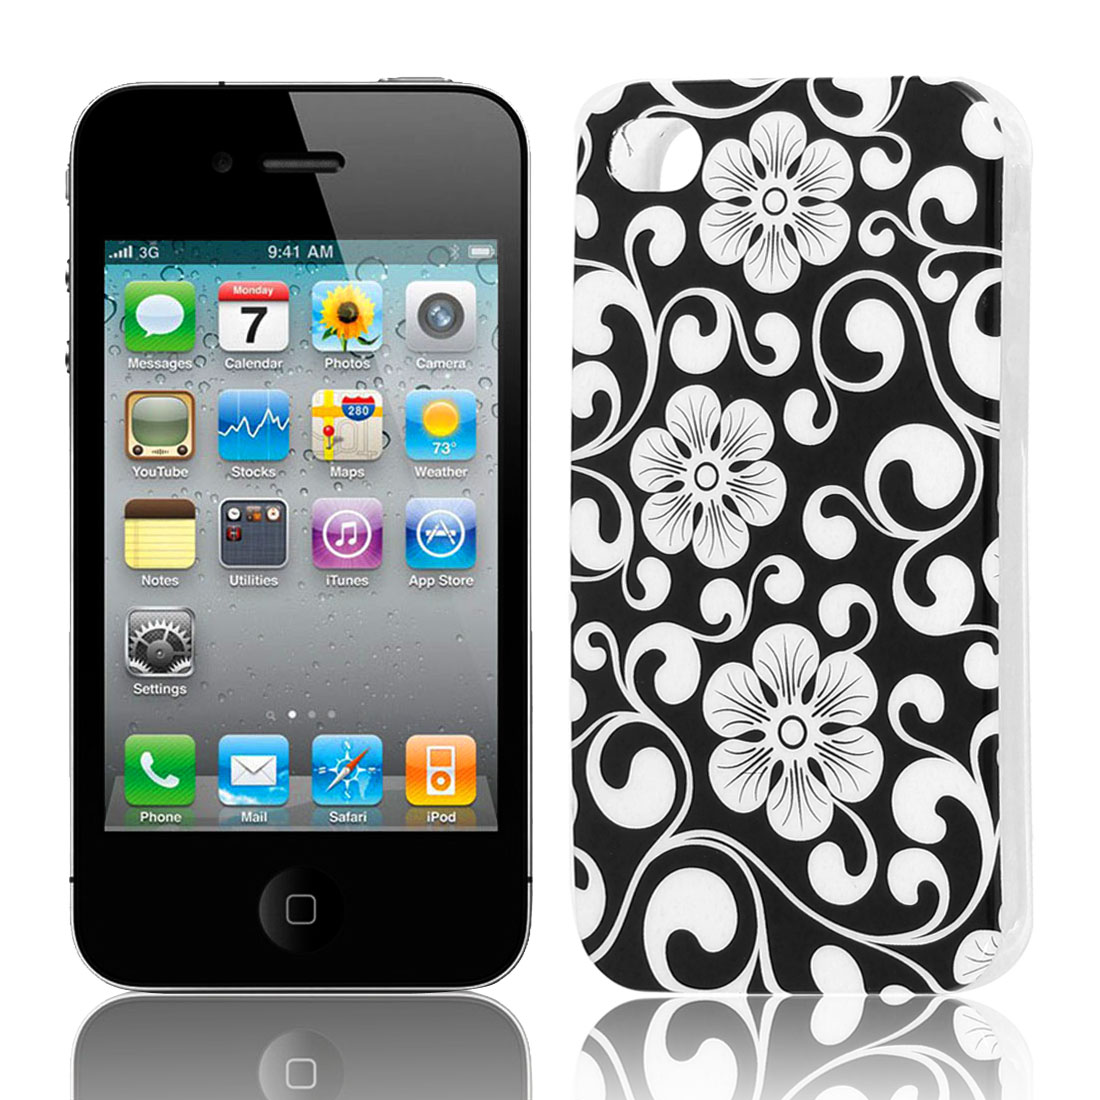 White Black Flower Pattern Soft Plastic Protective Skin Cover Case for Apple iPhone 4 4G 4S